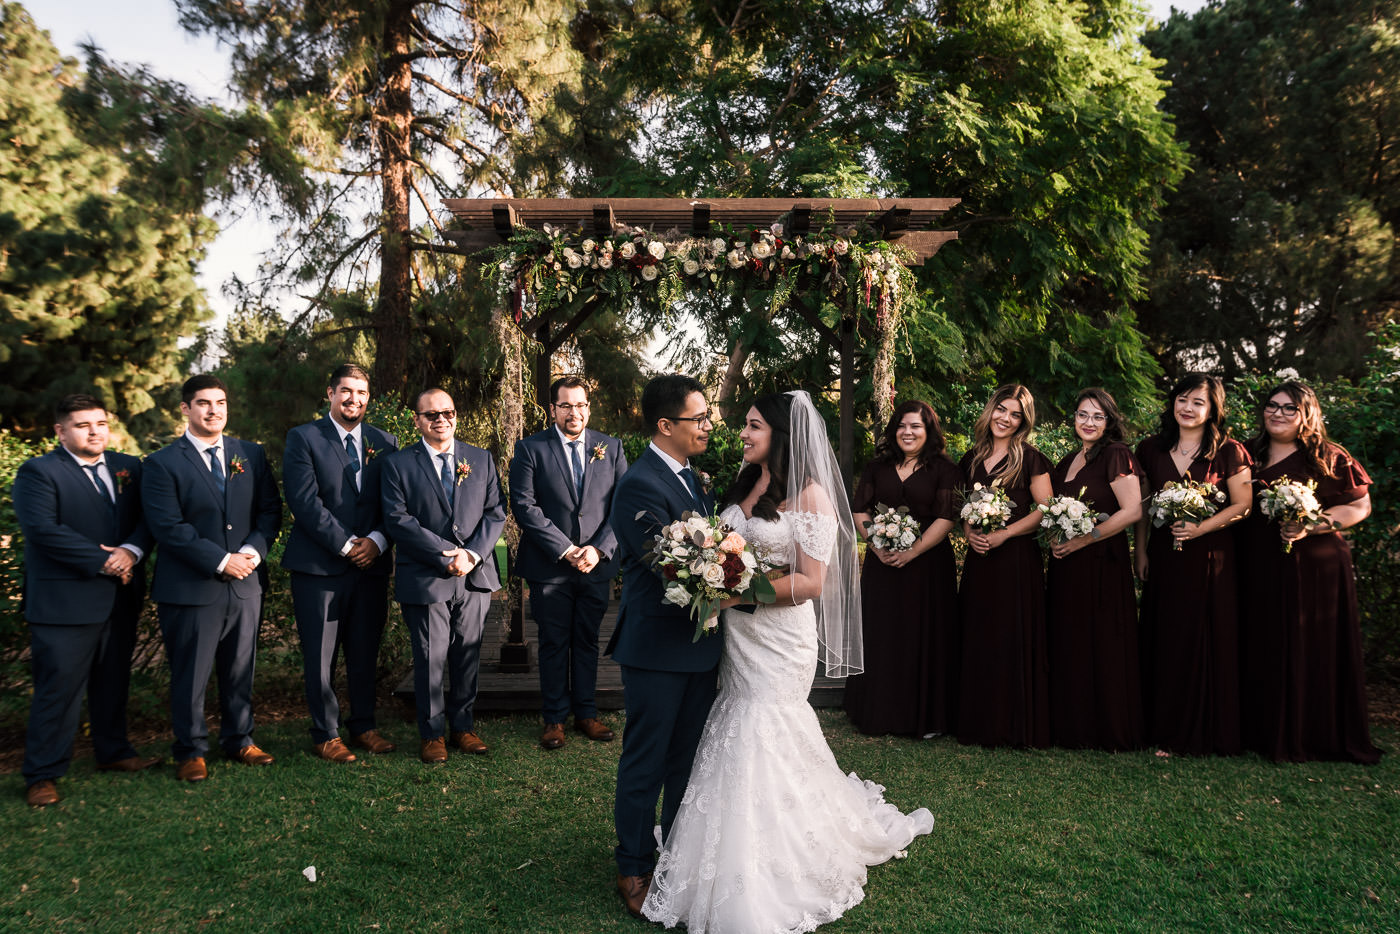 Bride and groom hold each other as they pose for photos with their wedding party.